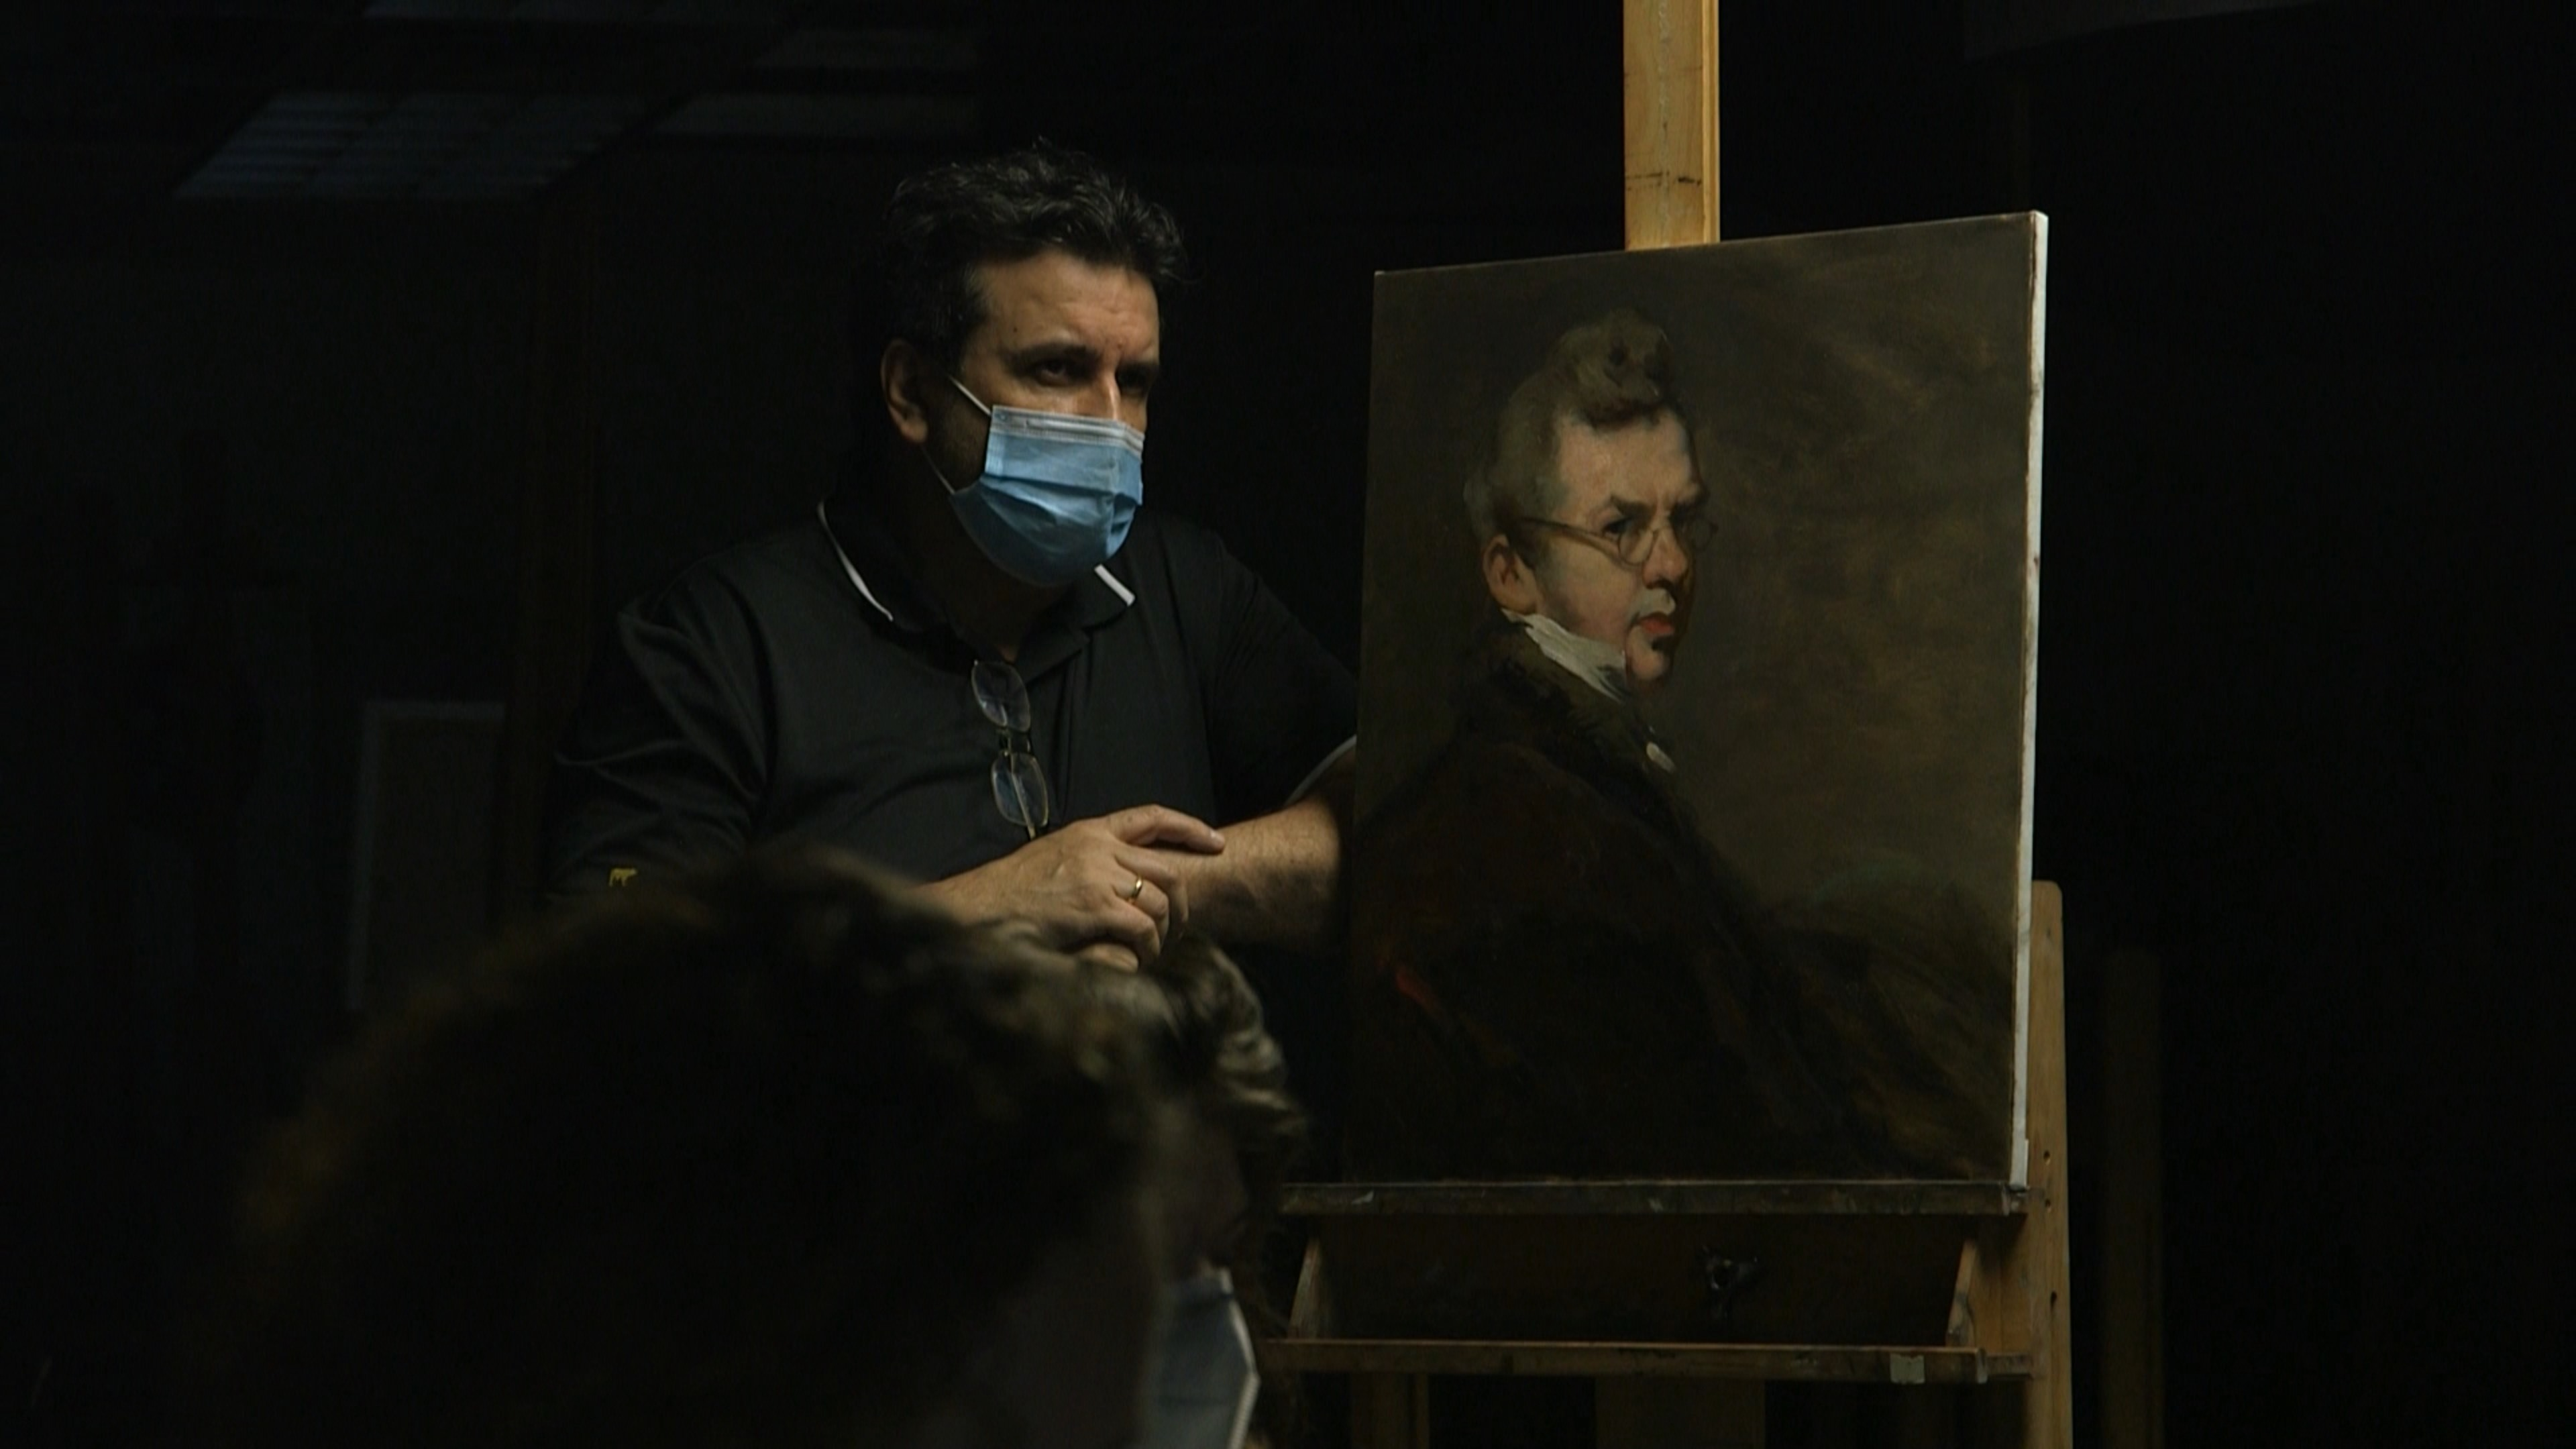 In a dark room, the light highlights a man in a medical face mask with his arm pressing against a classical style portrait painting of a man.